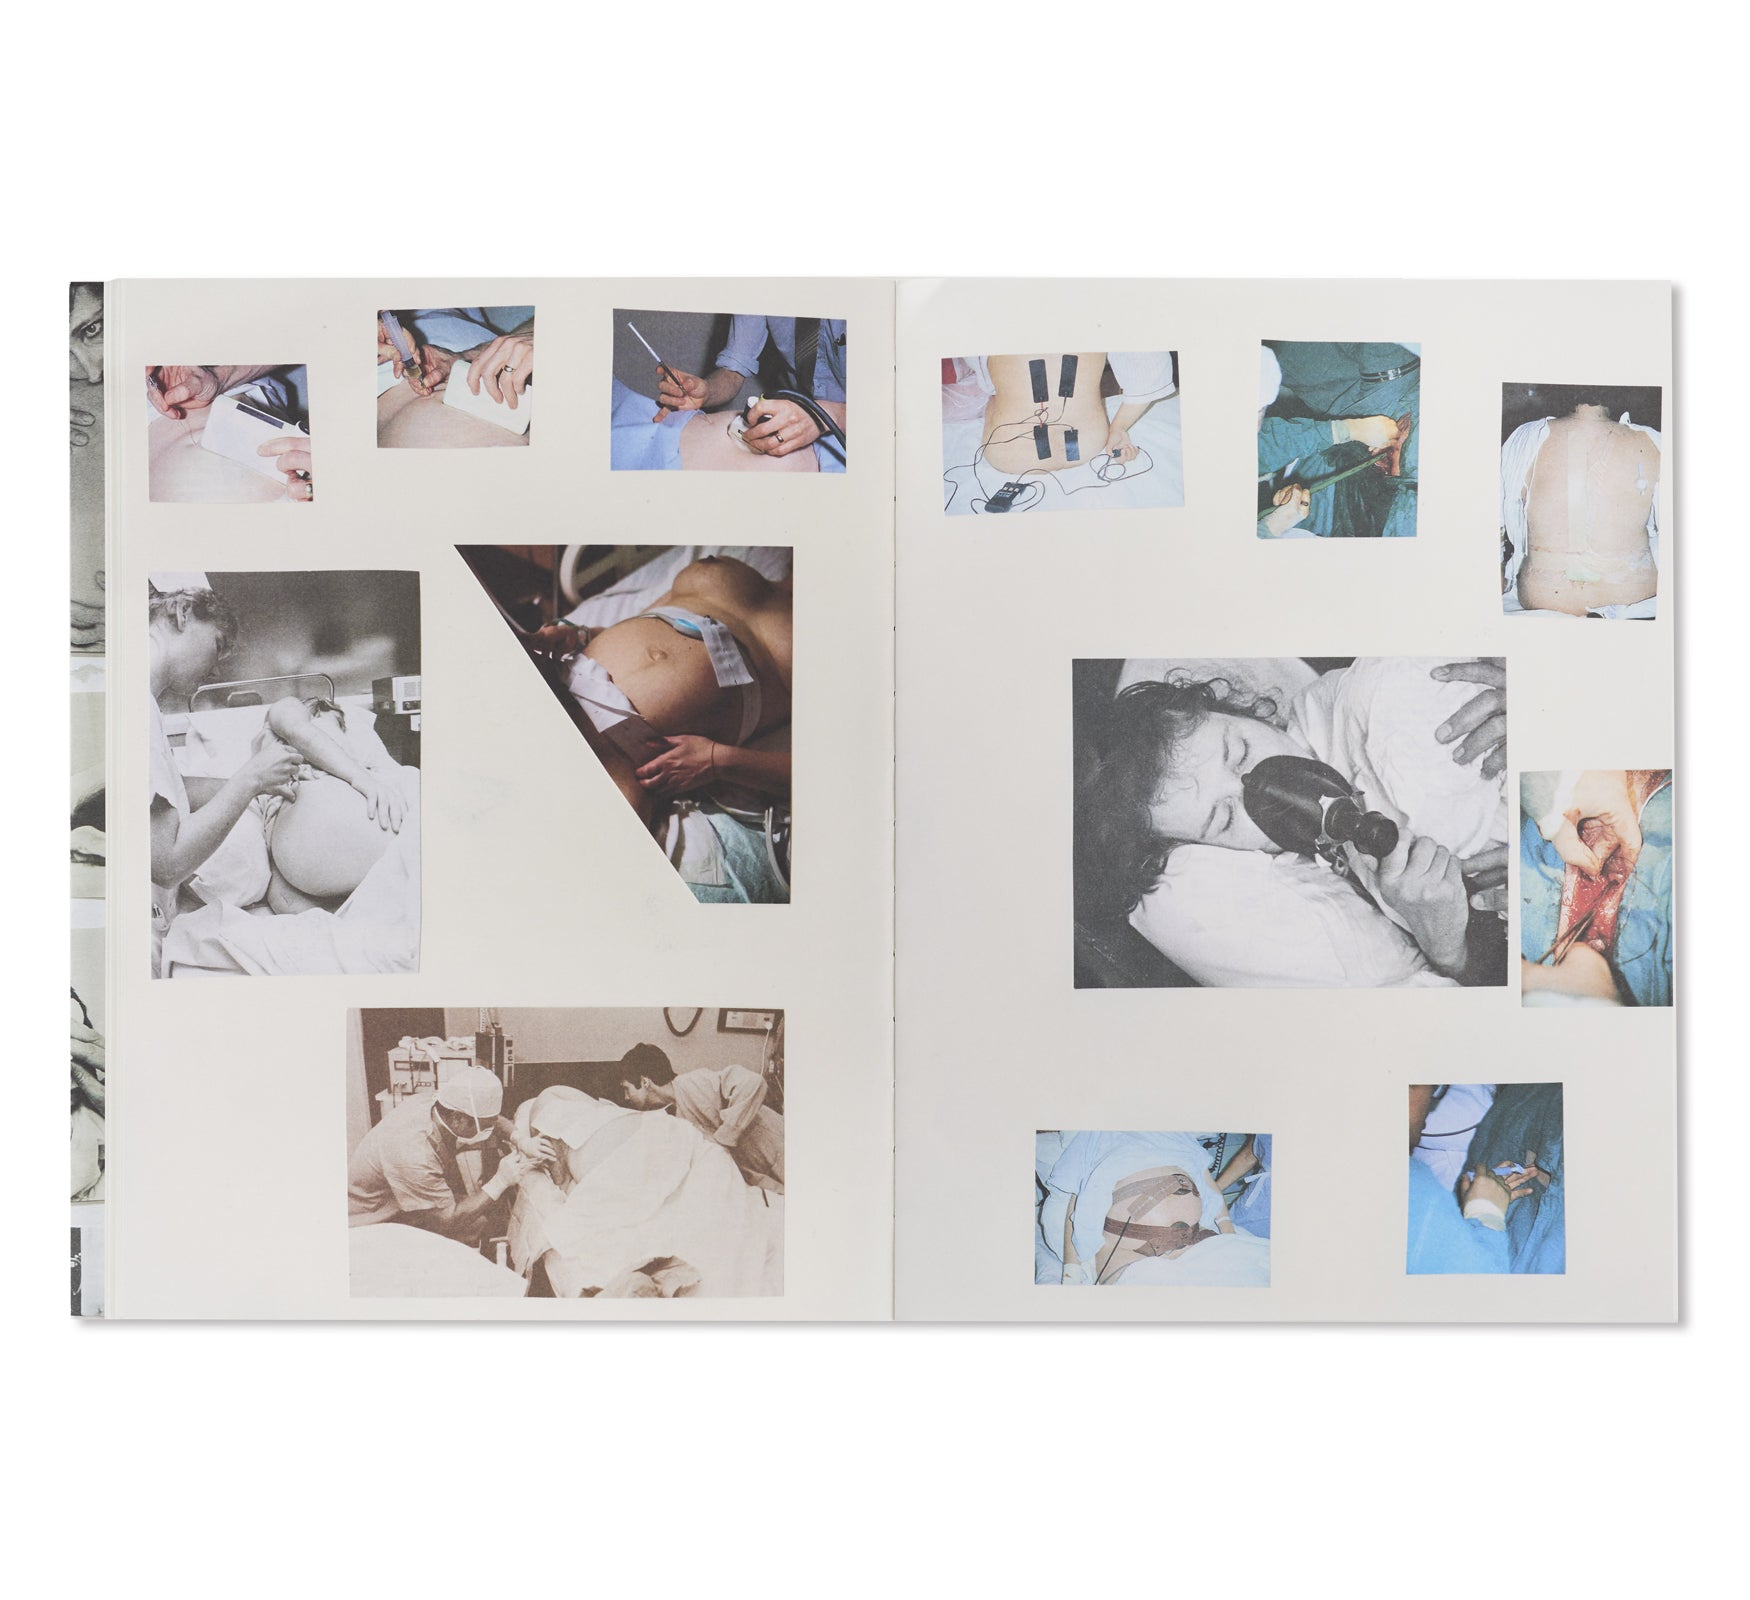 MY BIRTH by Carmen Winant